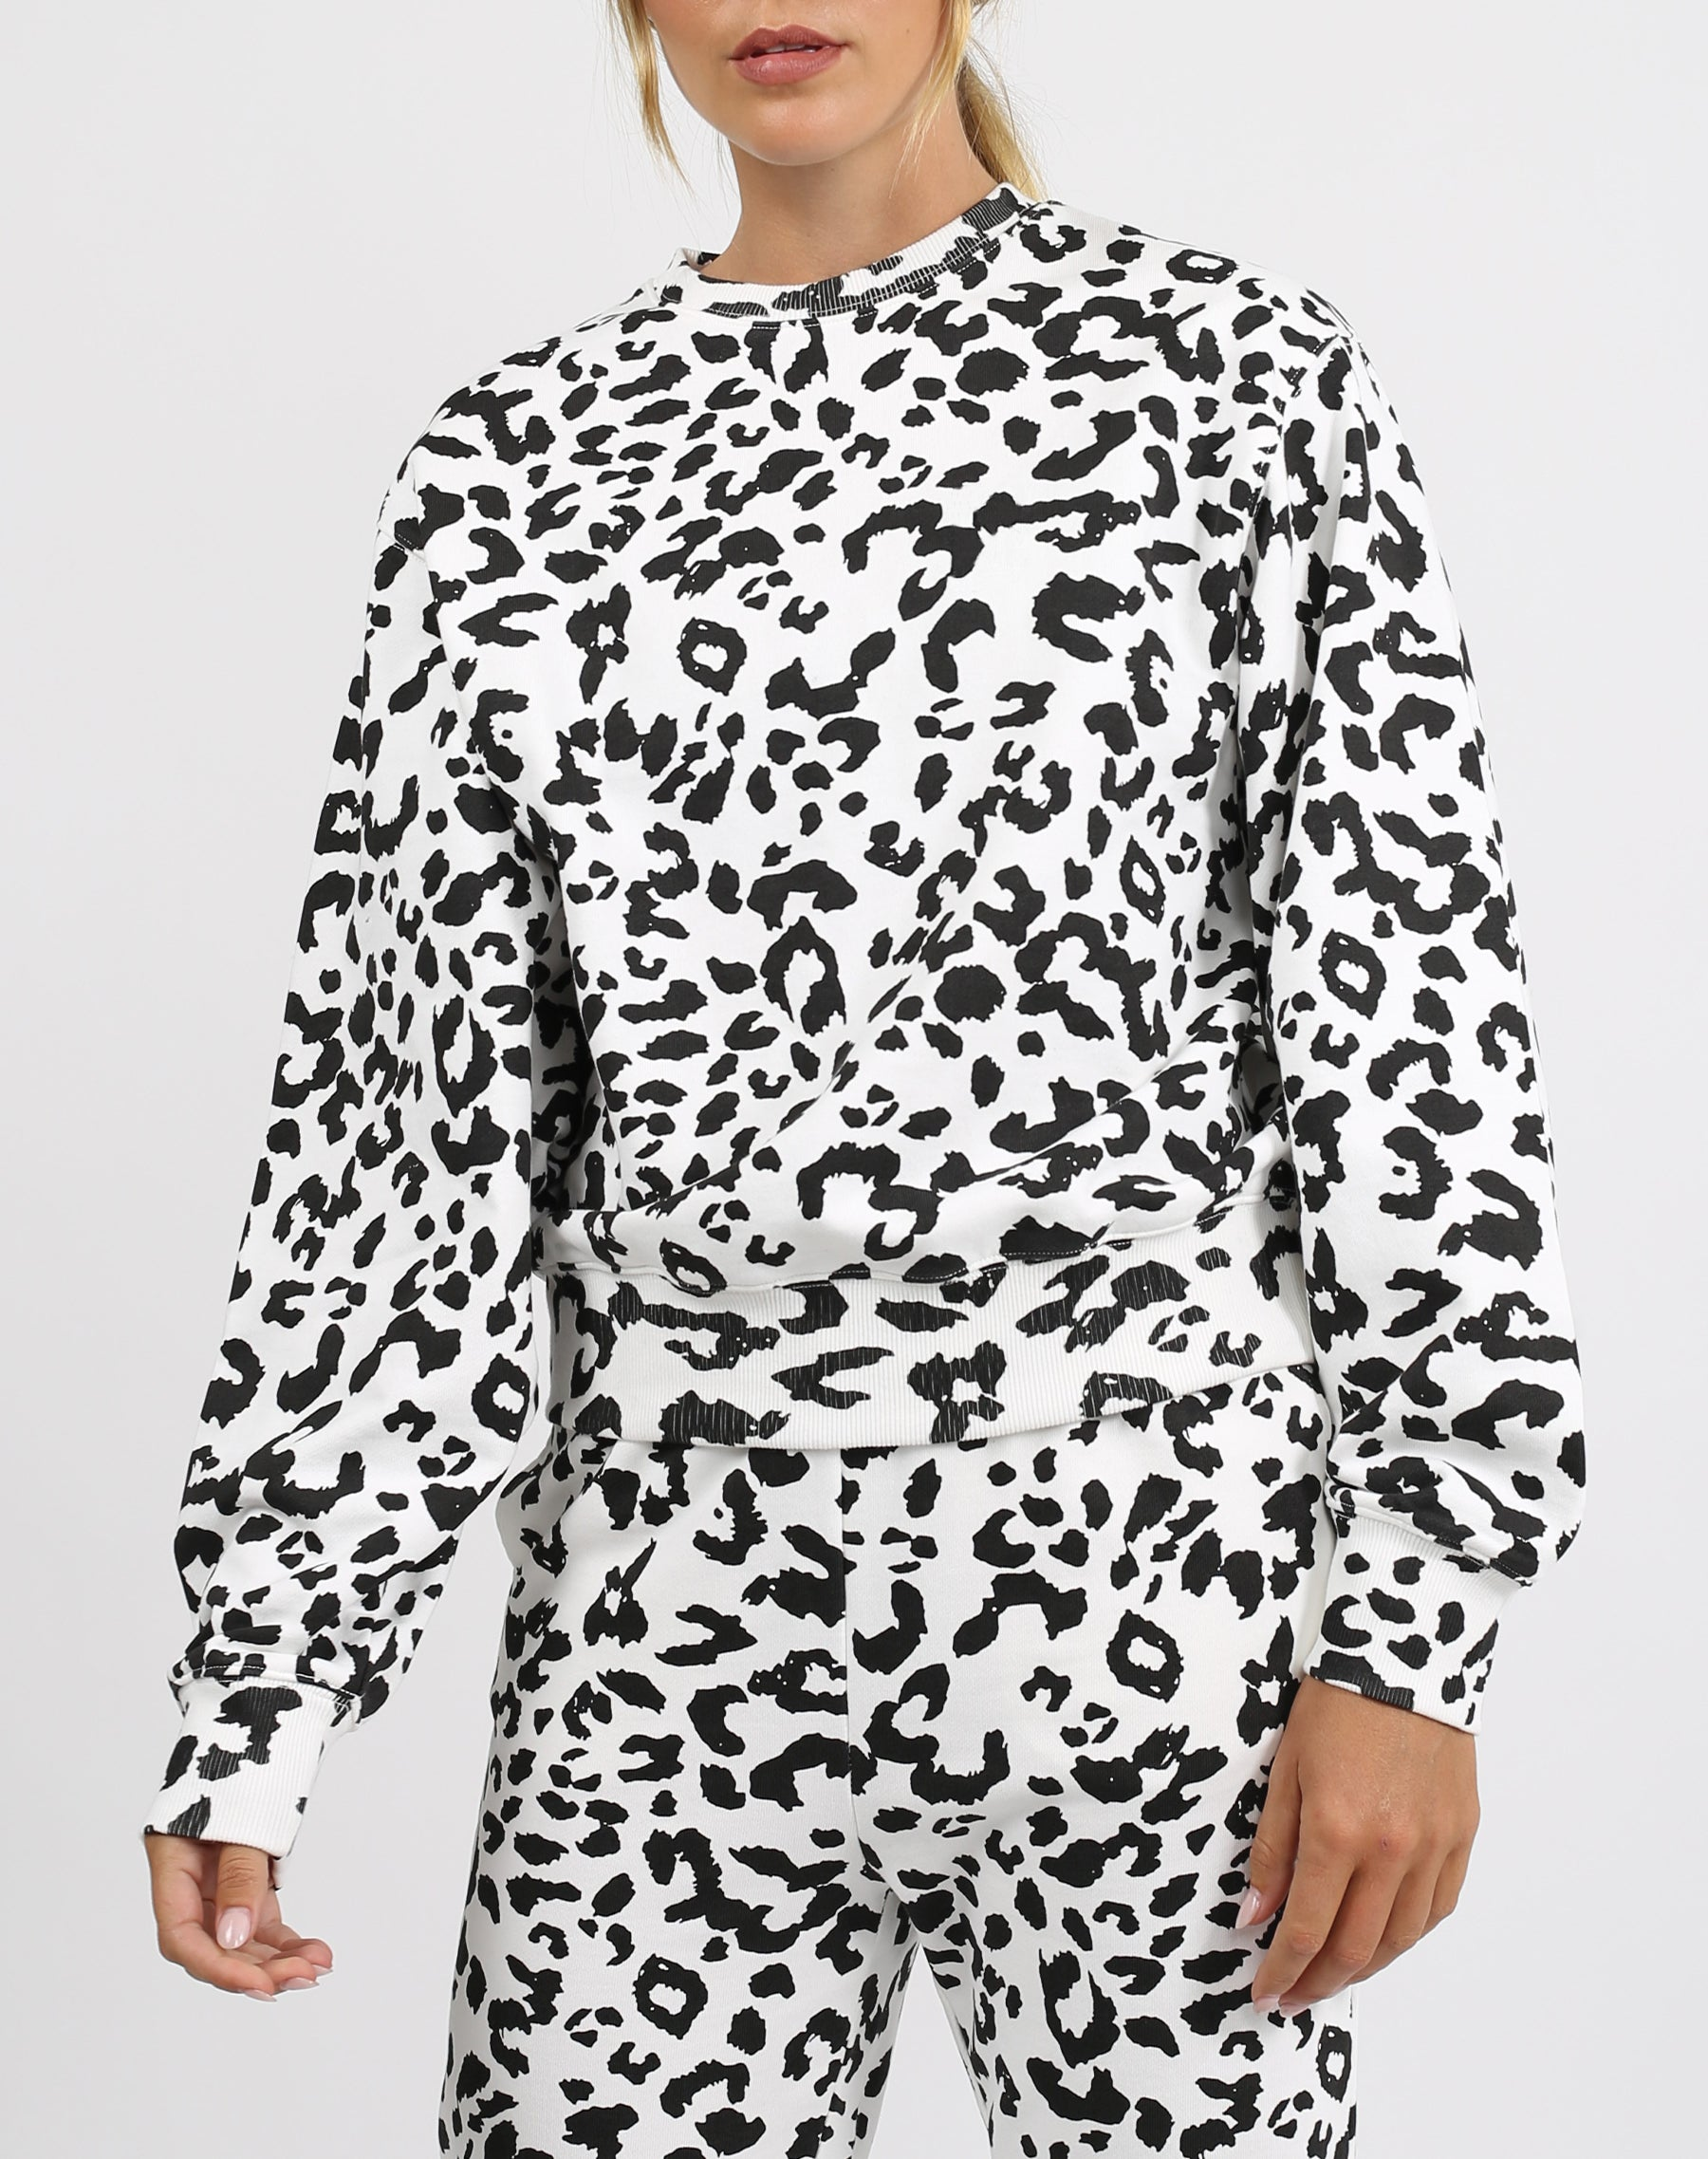 This is an image of the Babes Social Club Best Friend Crew Neck Sweater in Snow Leopard by Brunette the Label.